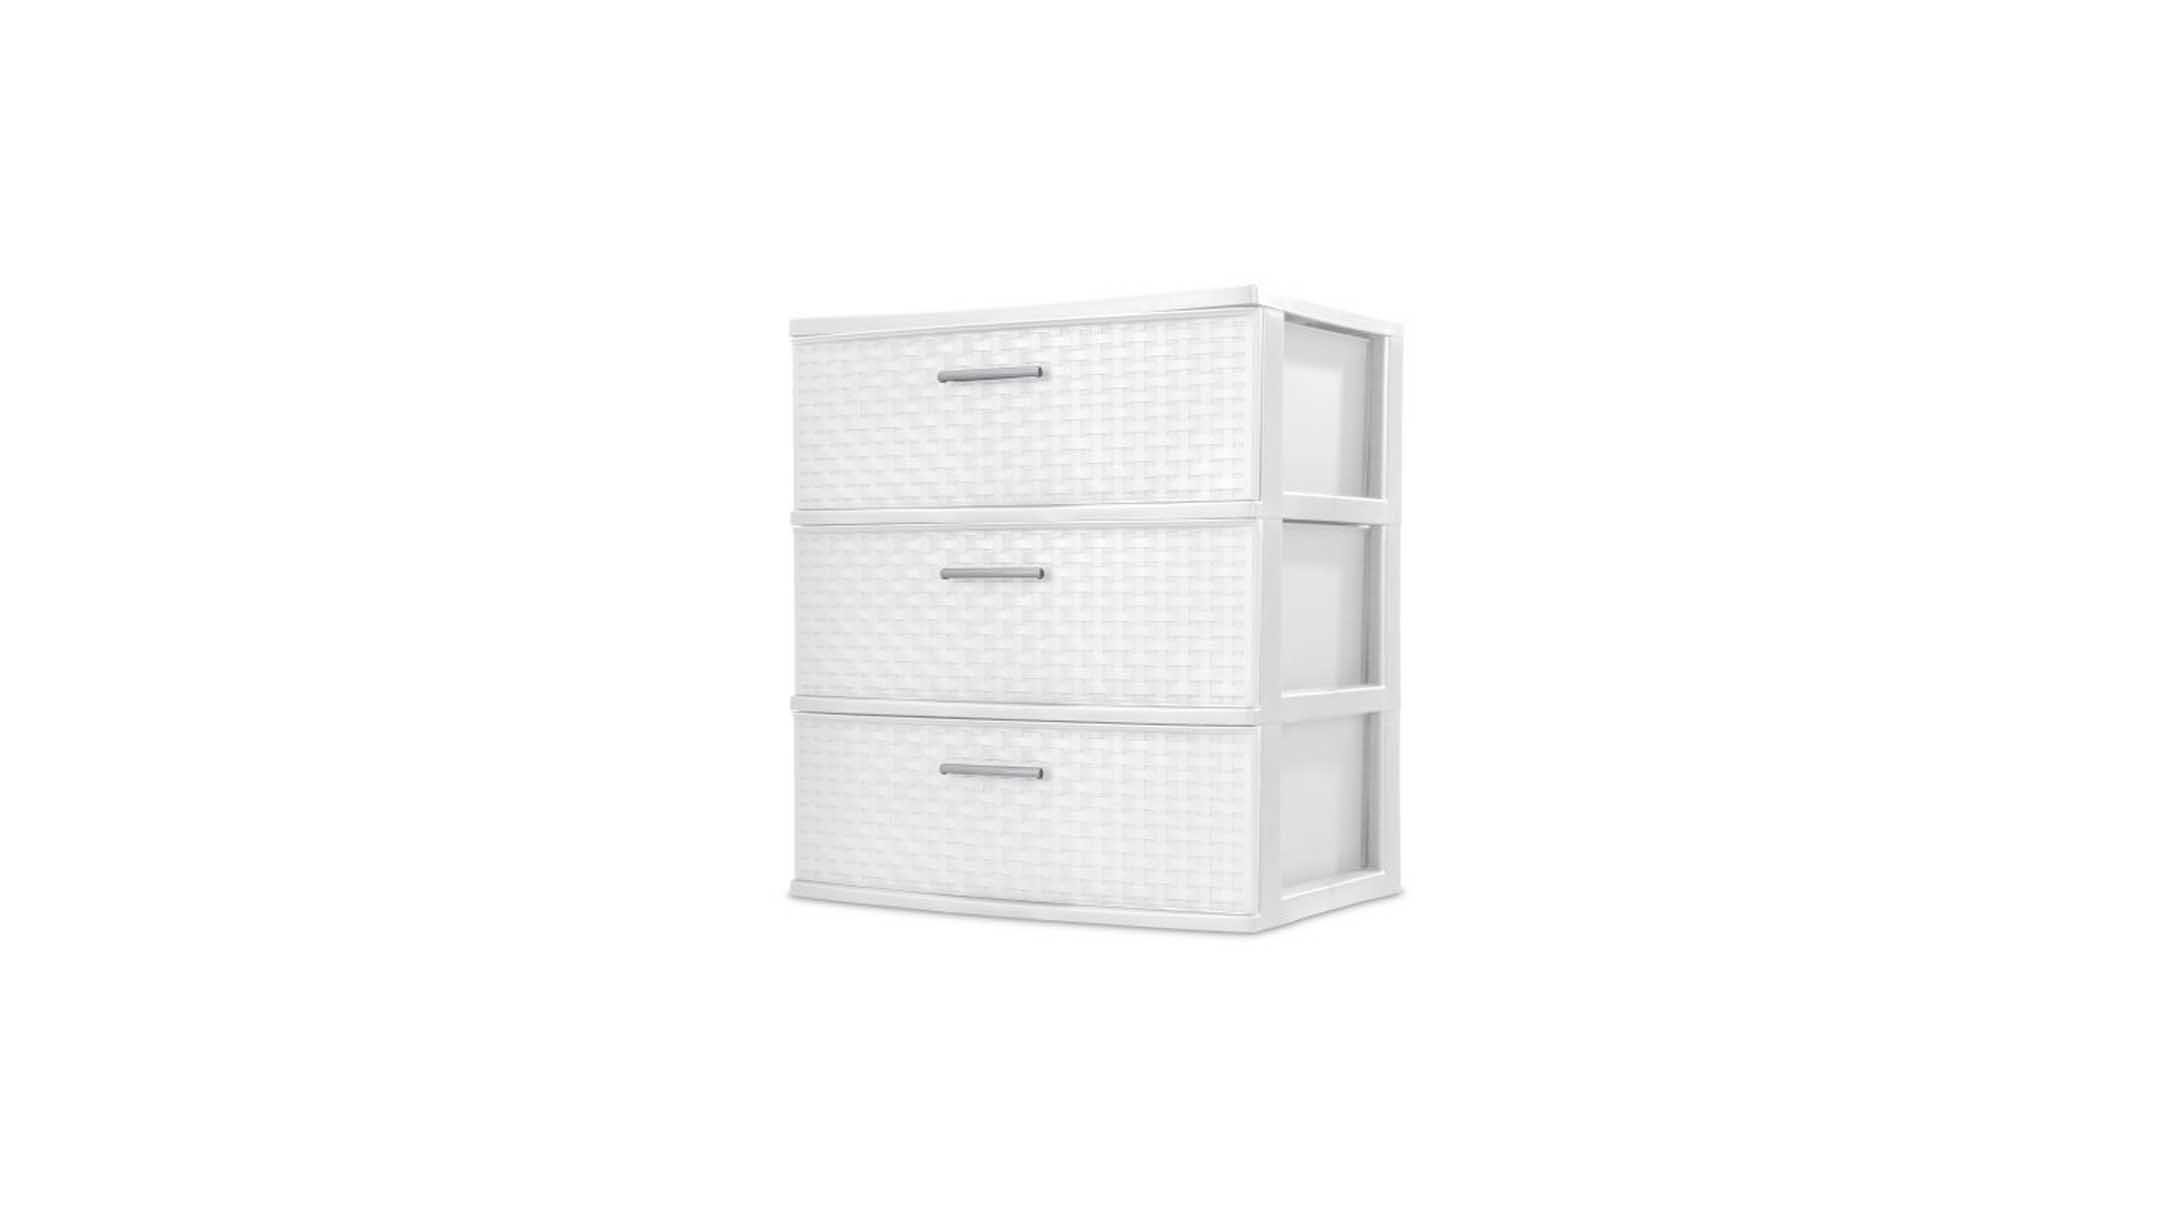 Sterilite 3 Drawer Wide Weave Tower for $15.78 at Walmart  sc 1 st  The Best Deals Club & Sterilite 3 Drawer Wide Weave Tower for $19.97 at Walmart u2013 The Best ...